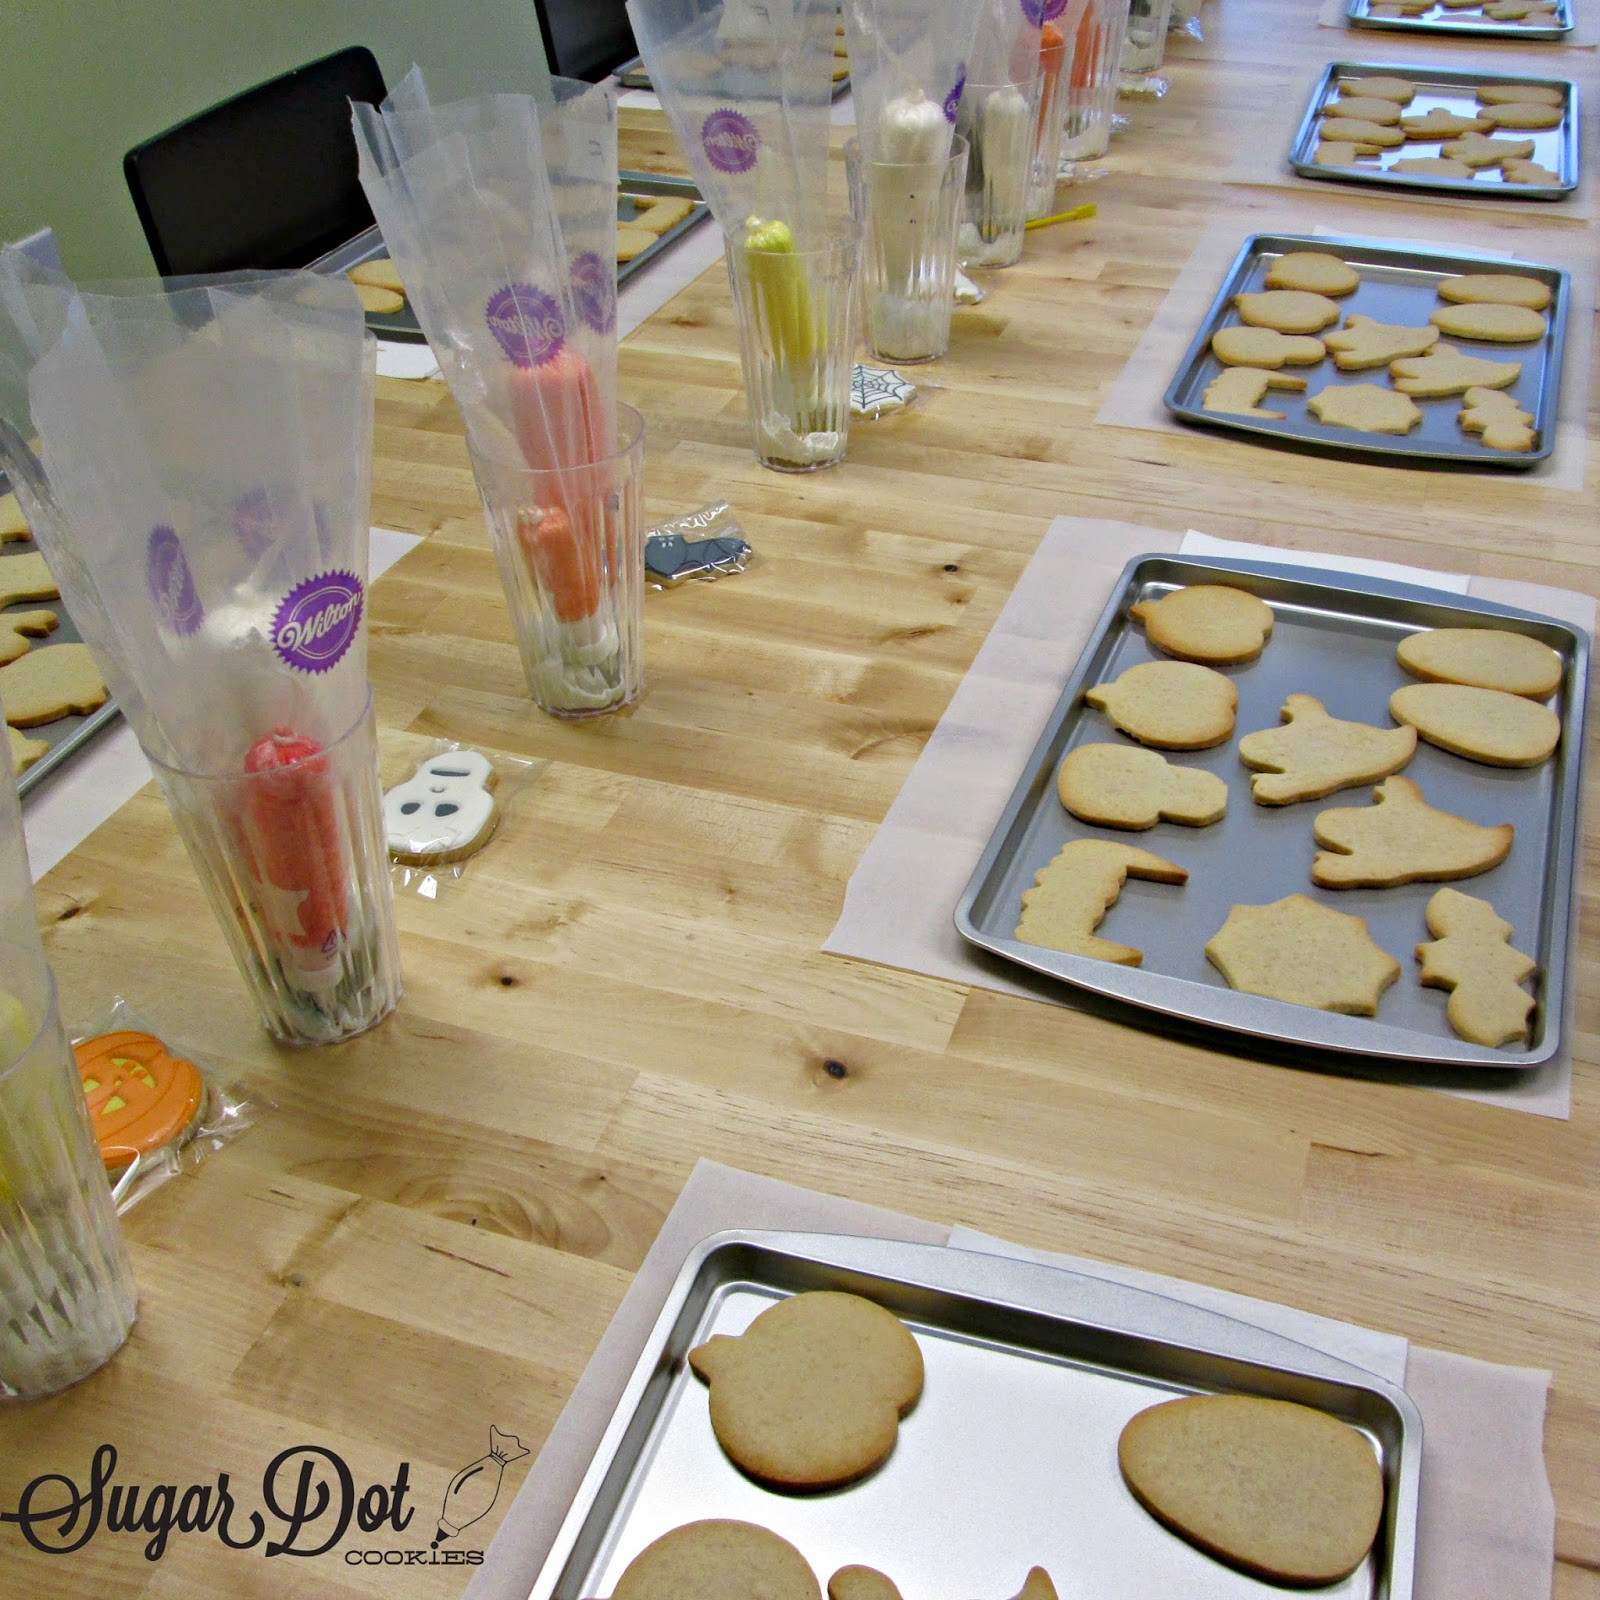 And Here They Are Decorating Their Halloween Cookies. New Kitchen Cabinet Designs. Kitchen Tile Designs For Backsplash. Japanese Kitchen Designs. Design Your Own Kitchen. Kitchen Stencils Designs. Simple Modern Kitchen Design. Picture Of Kitchen Design. White Kitchen Design